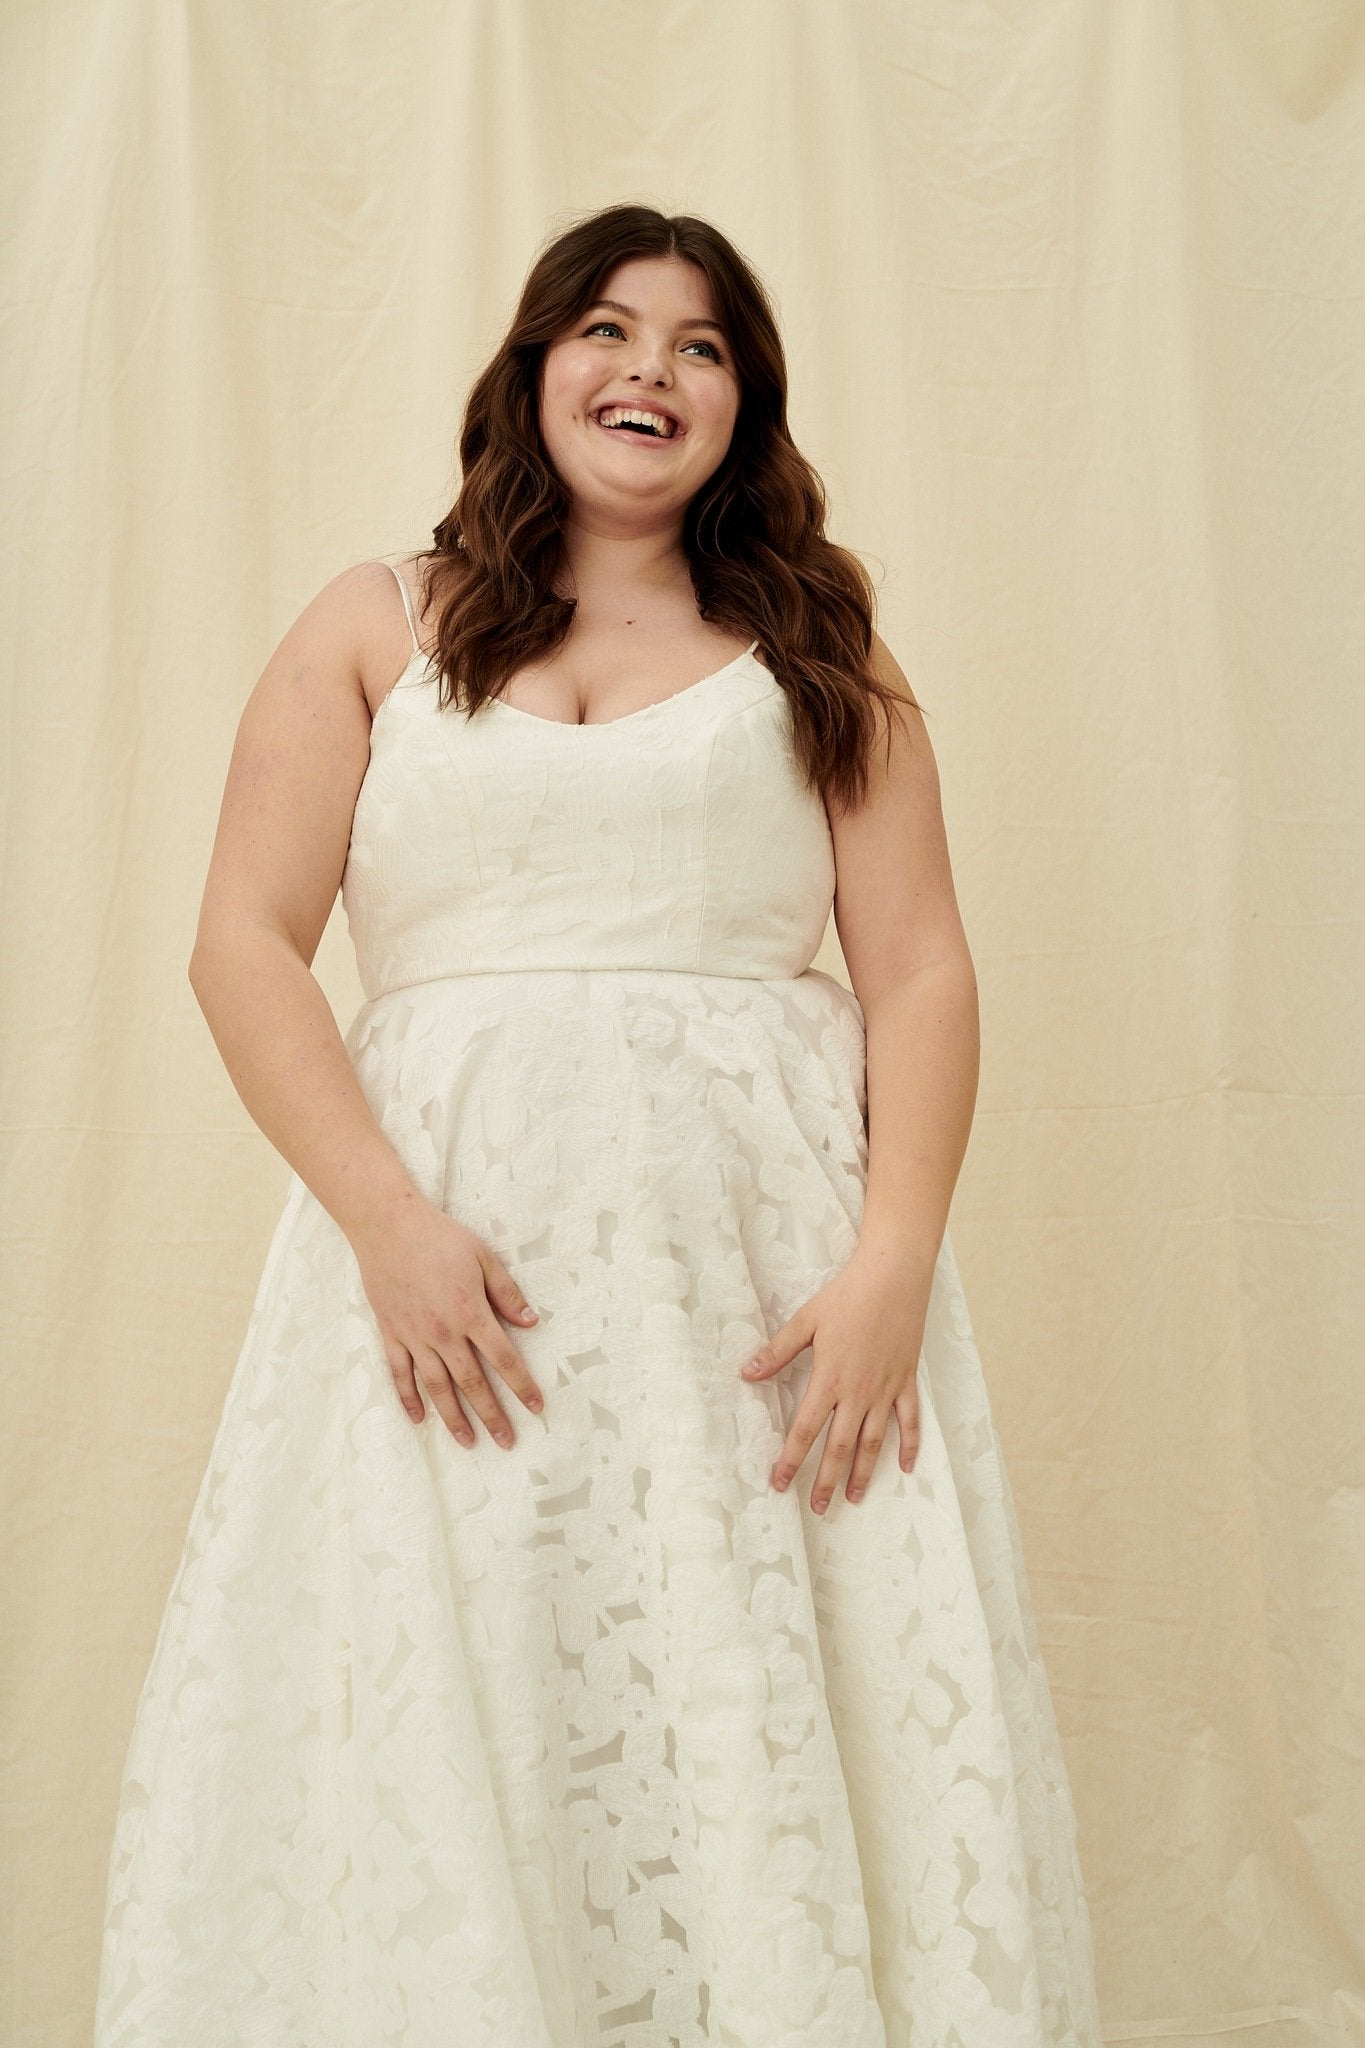 Affordable curvy plus size wedding dresses in Vancouver and Calgary